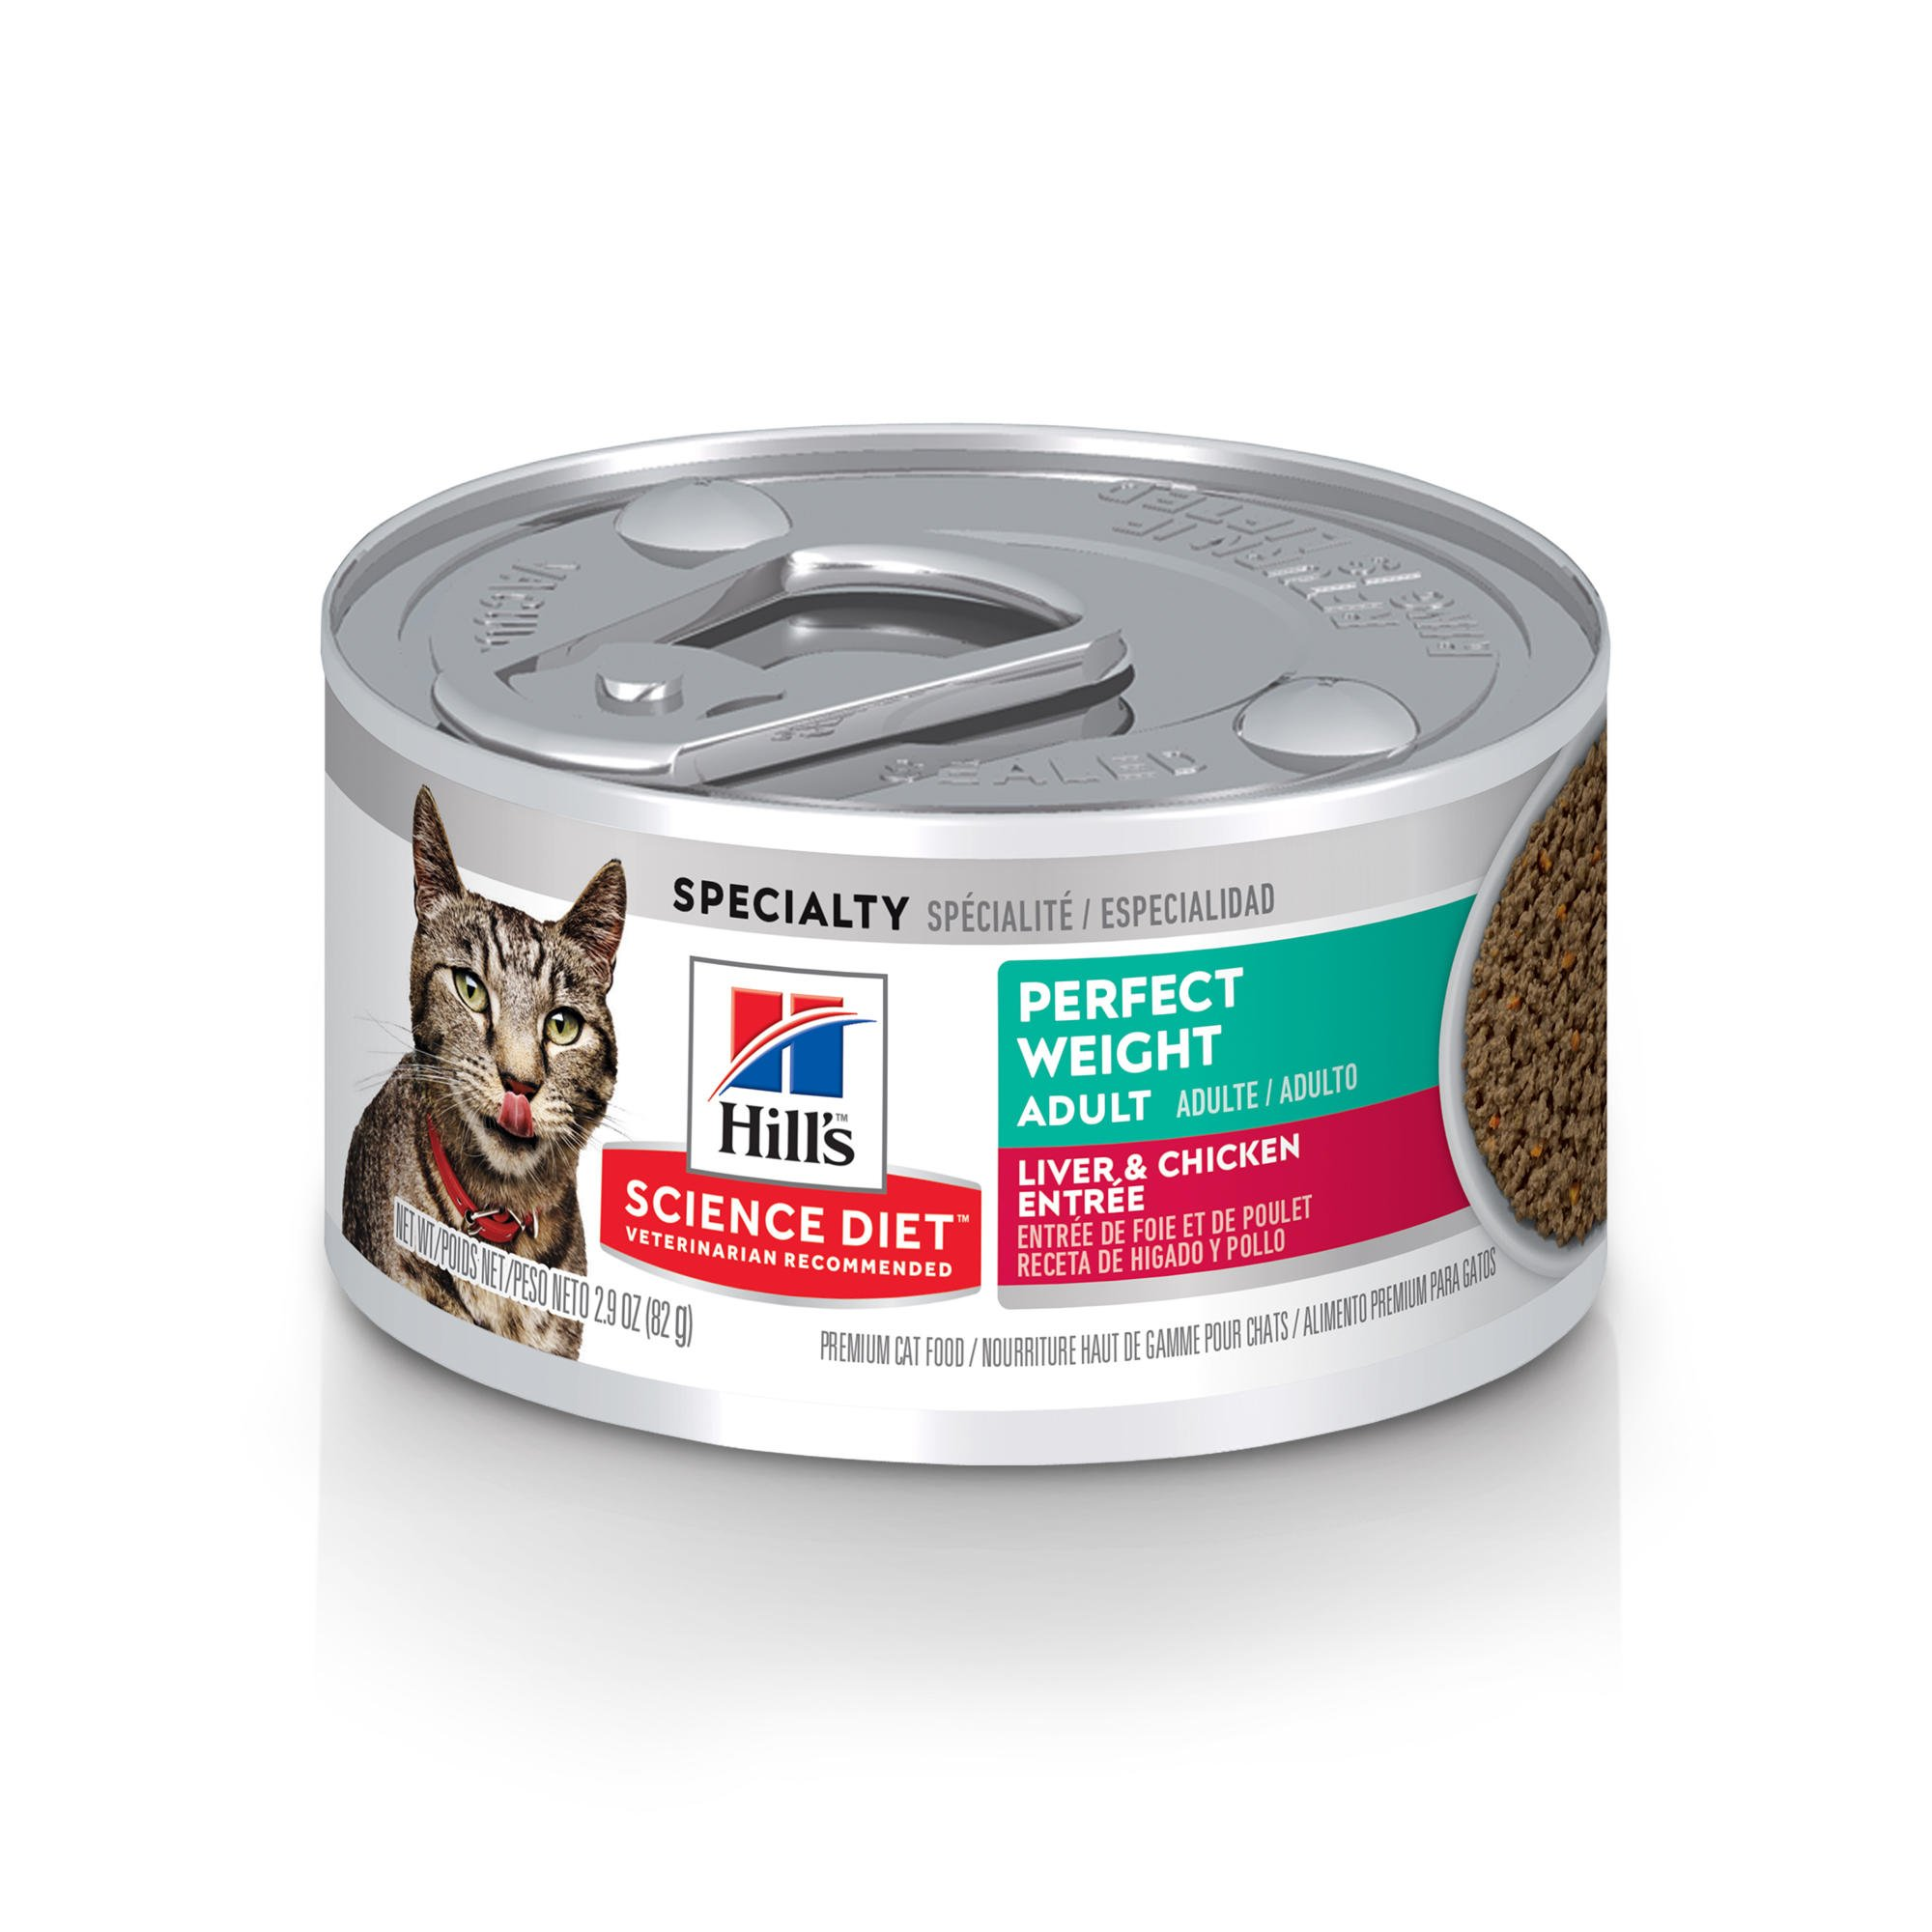 Hills Science Diet Adult Perfect Weight Liver & Chicken Entree Canned Cat Food